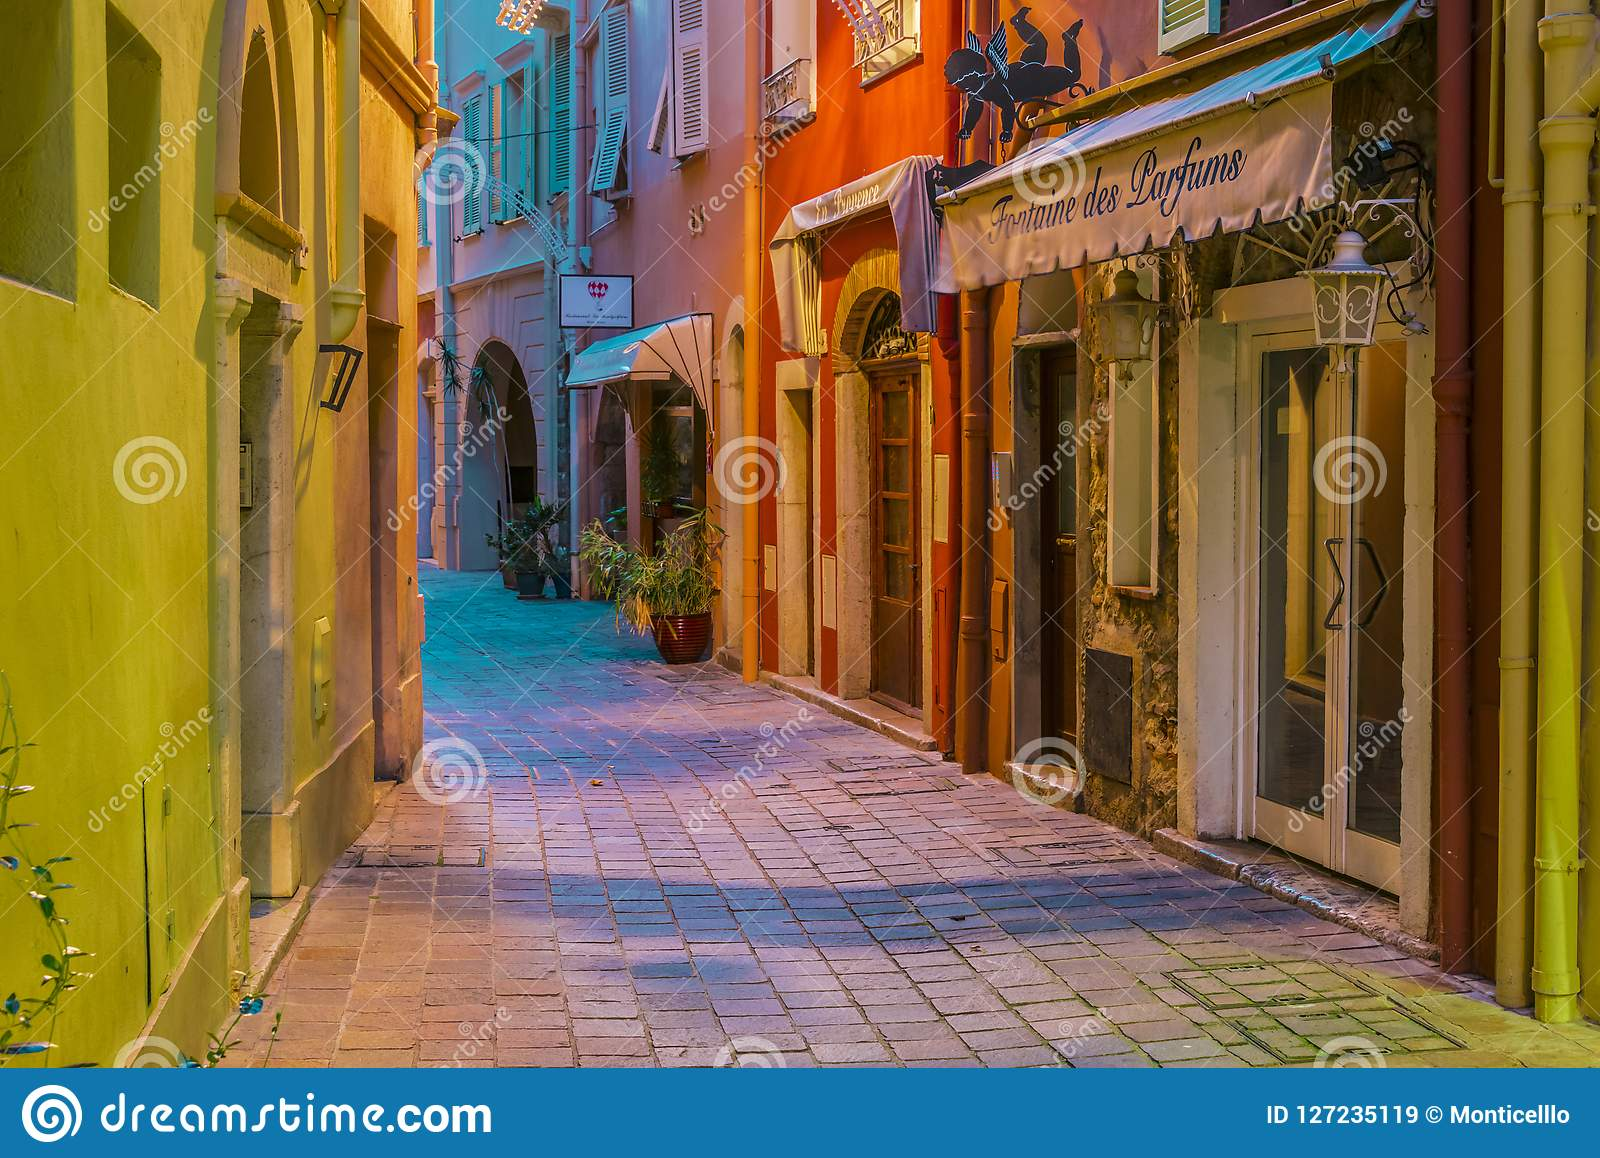 Architecture Of The Old Town Of Monaco On French Riviera